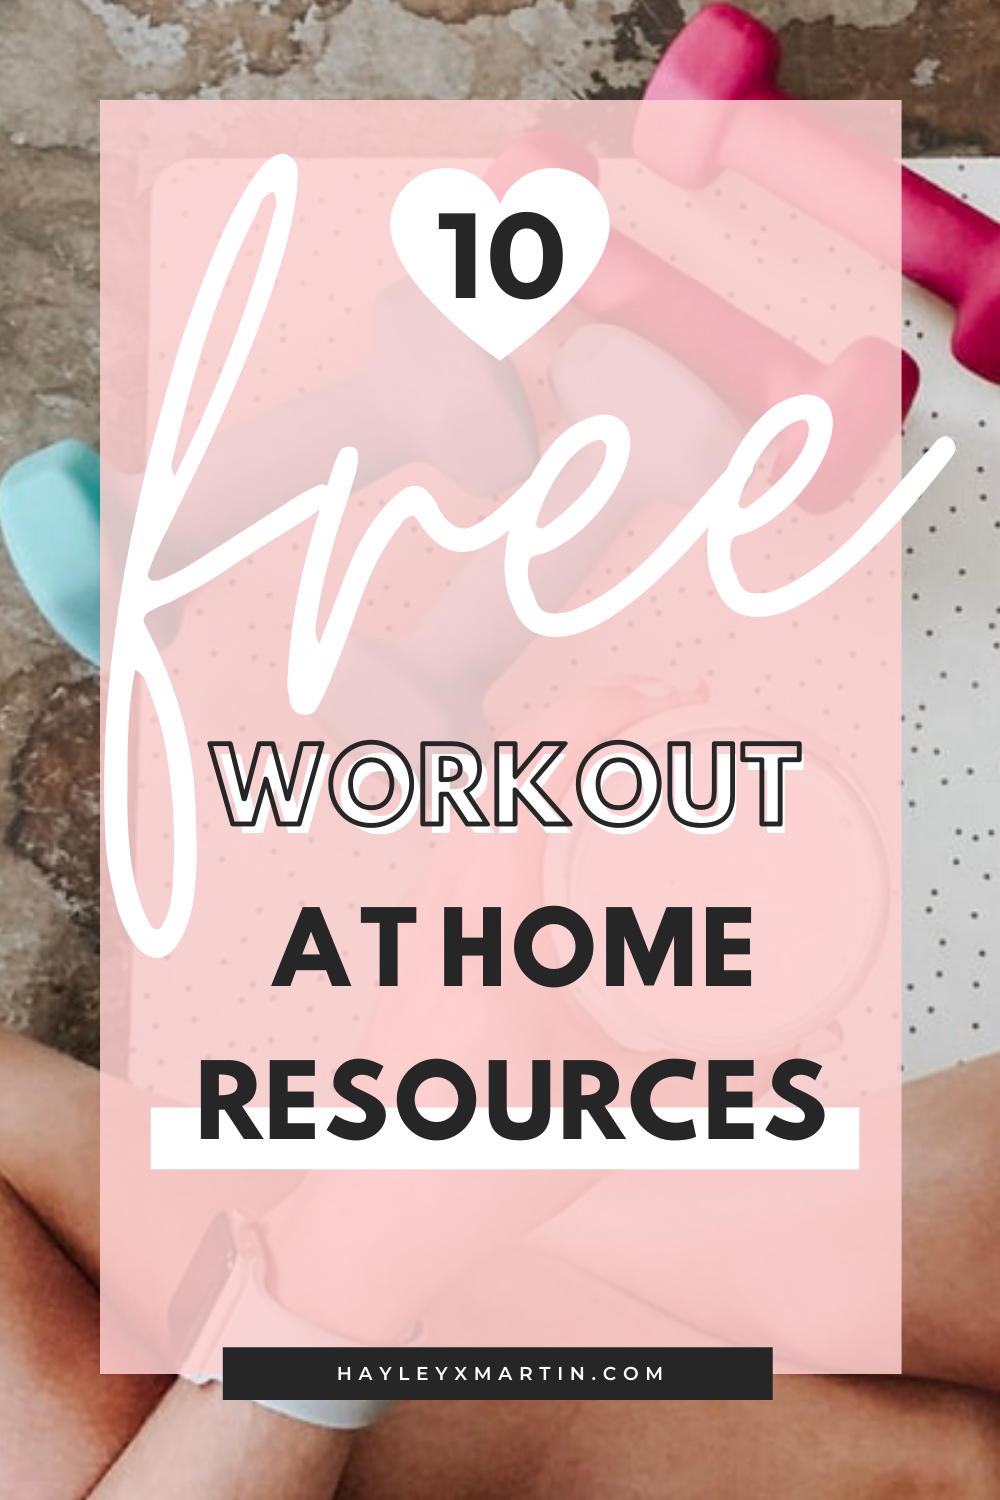 10 FREE WORKOUT AT HOME RESOURCES | HAYLEYXMARTIN